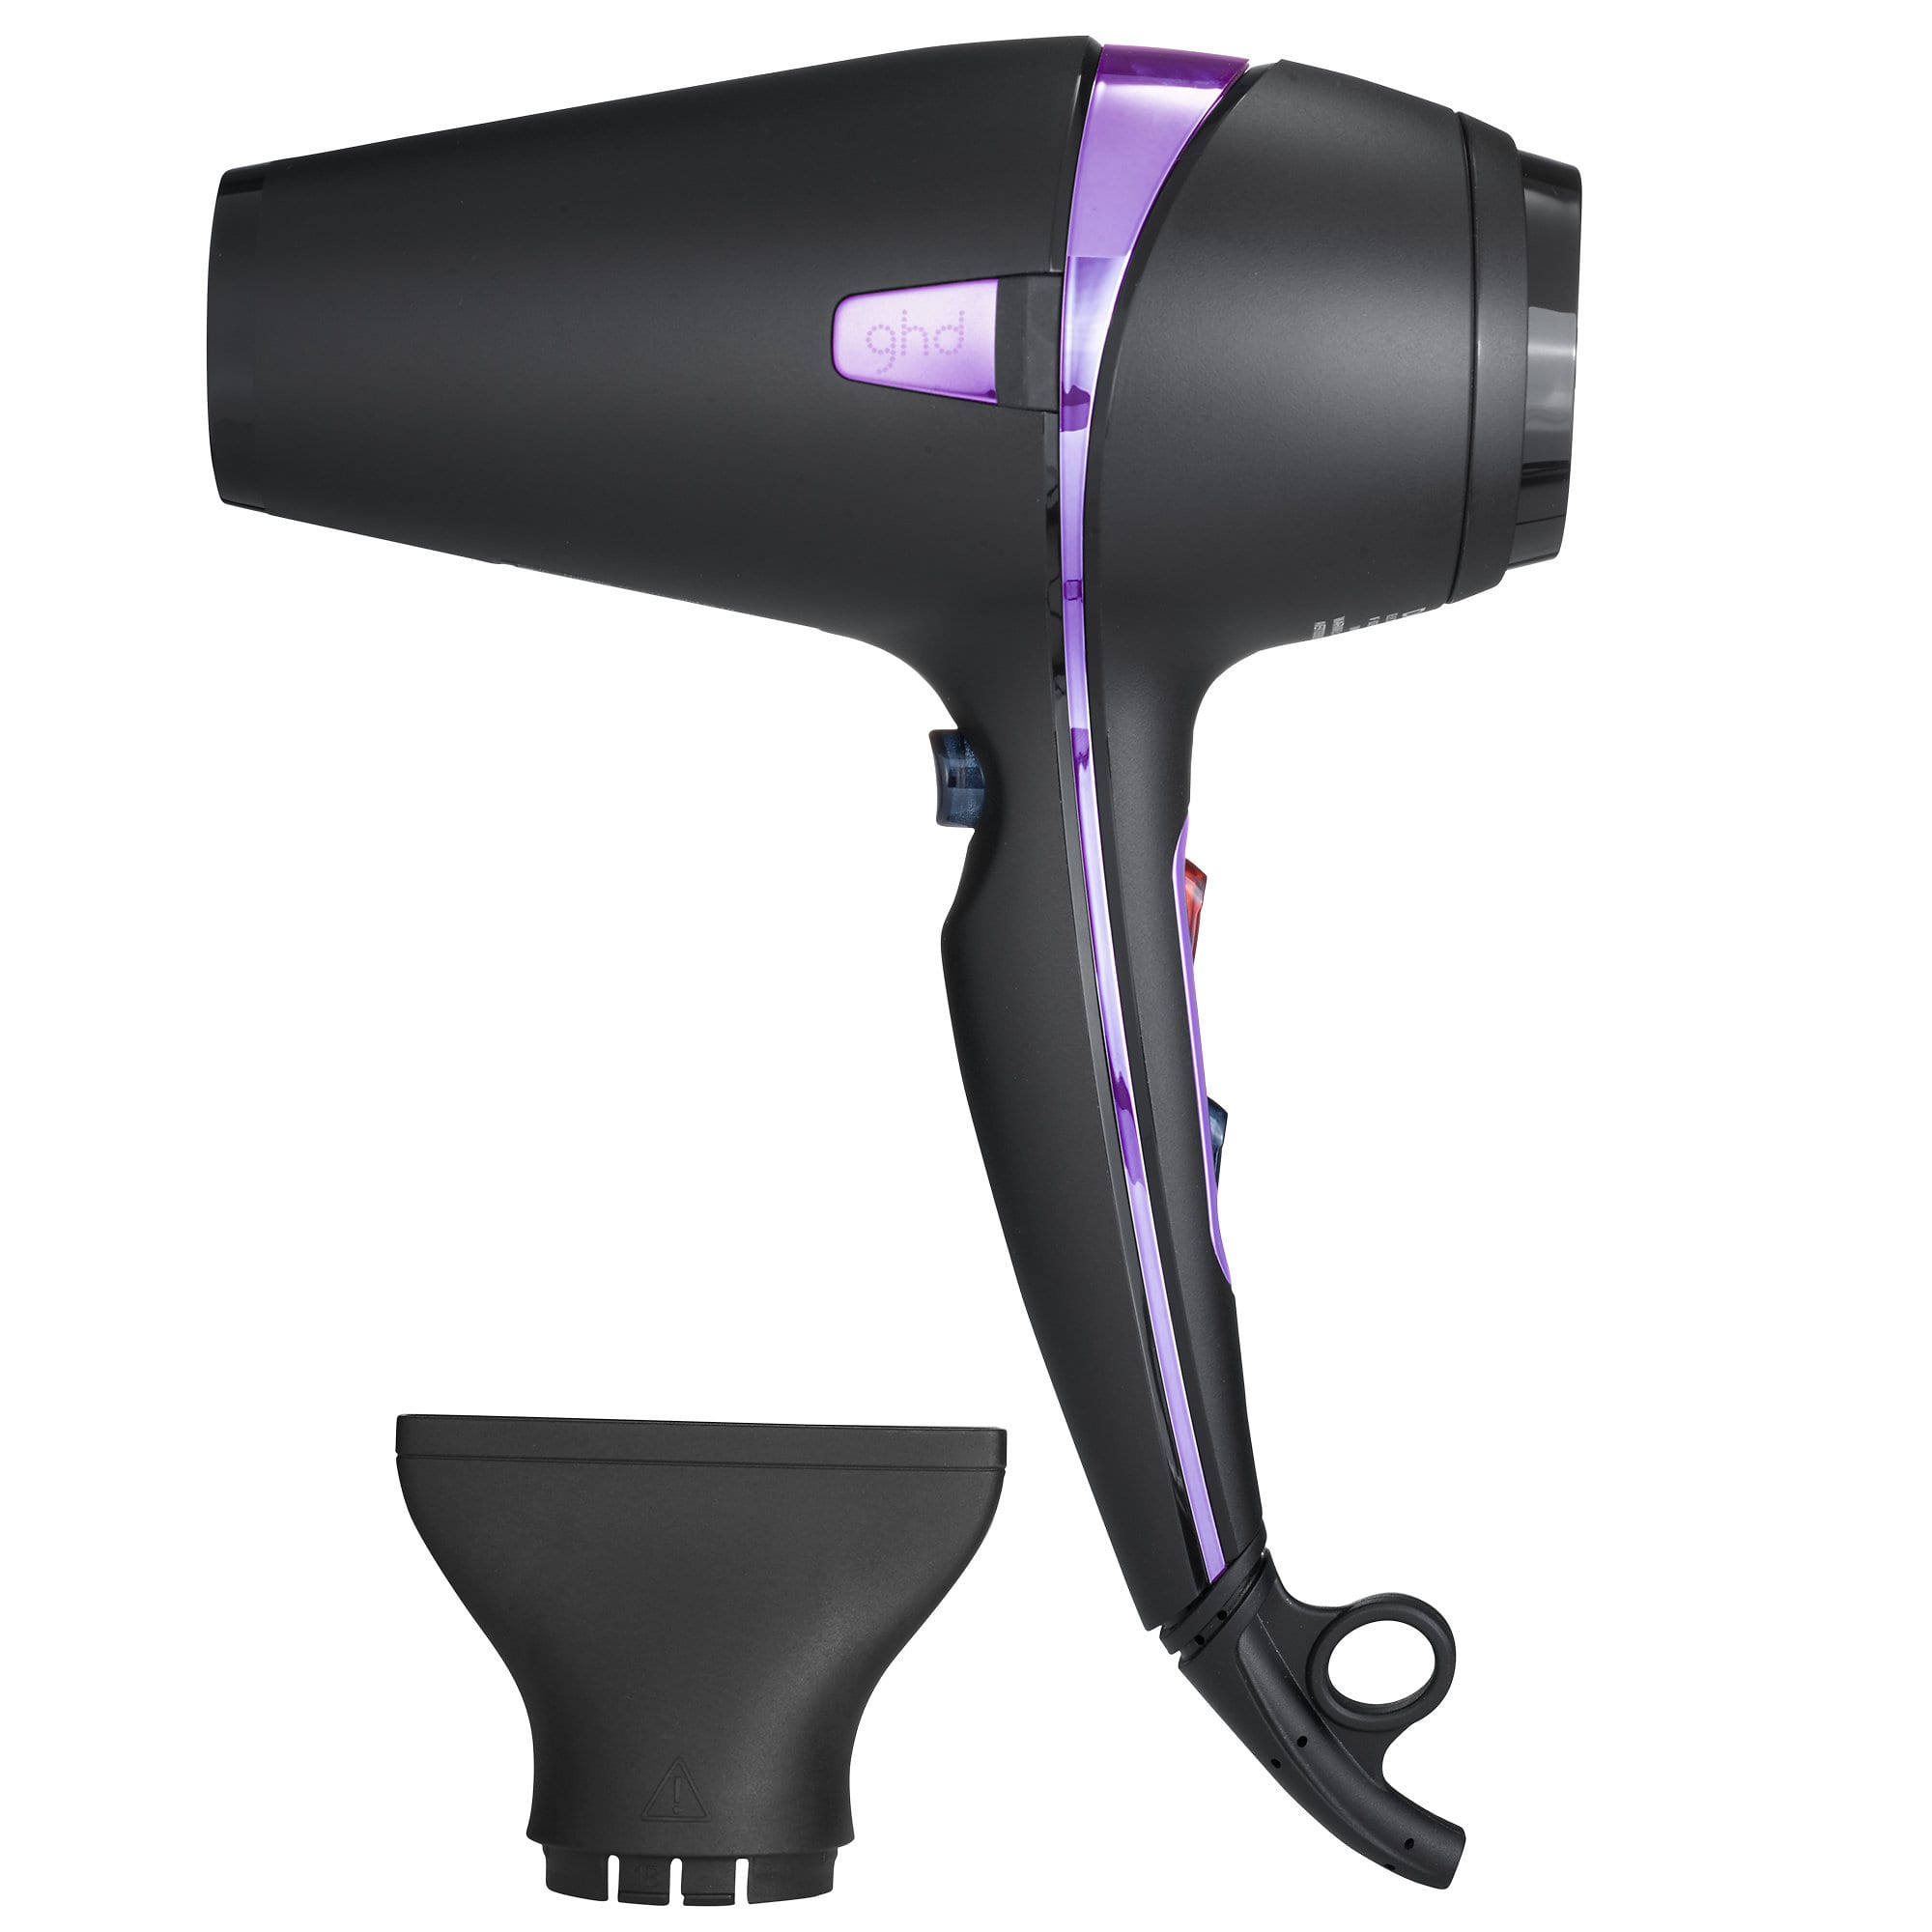 Nocturne Air Professional Performance Hairdryer